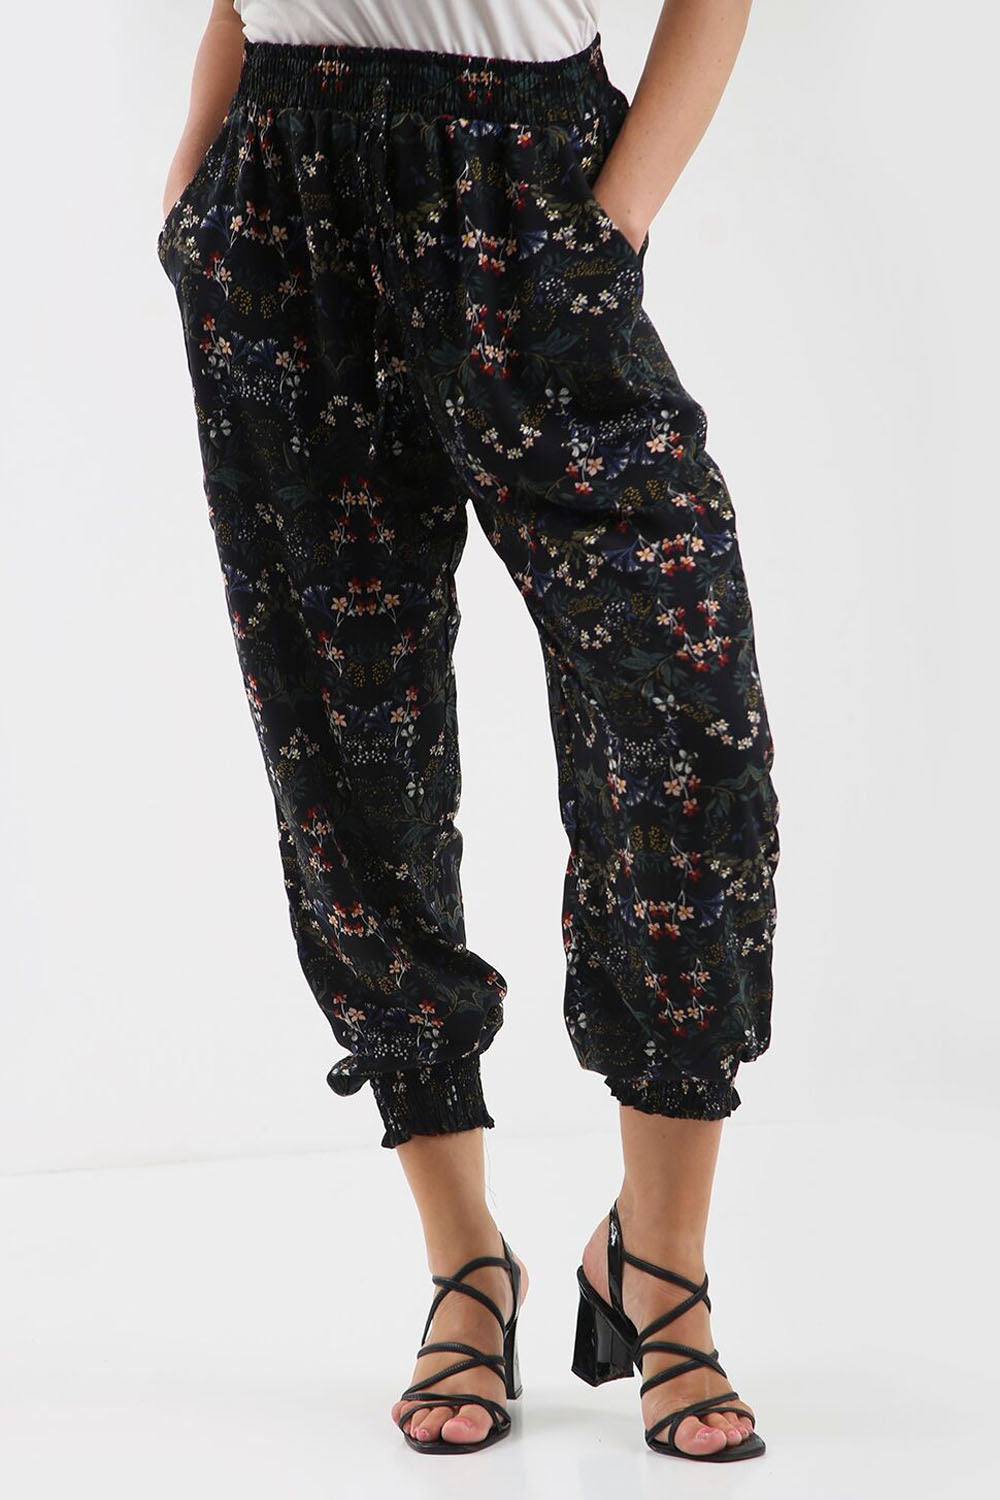 High Waisted Black Floral Chiffon Cuffed Leg Trousers - bejealous-com